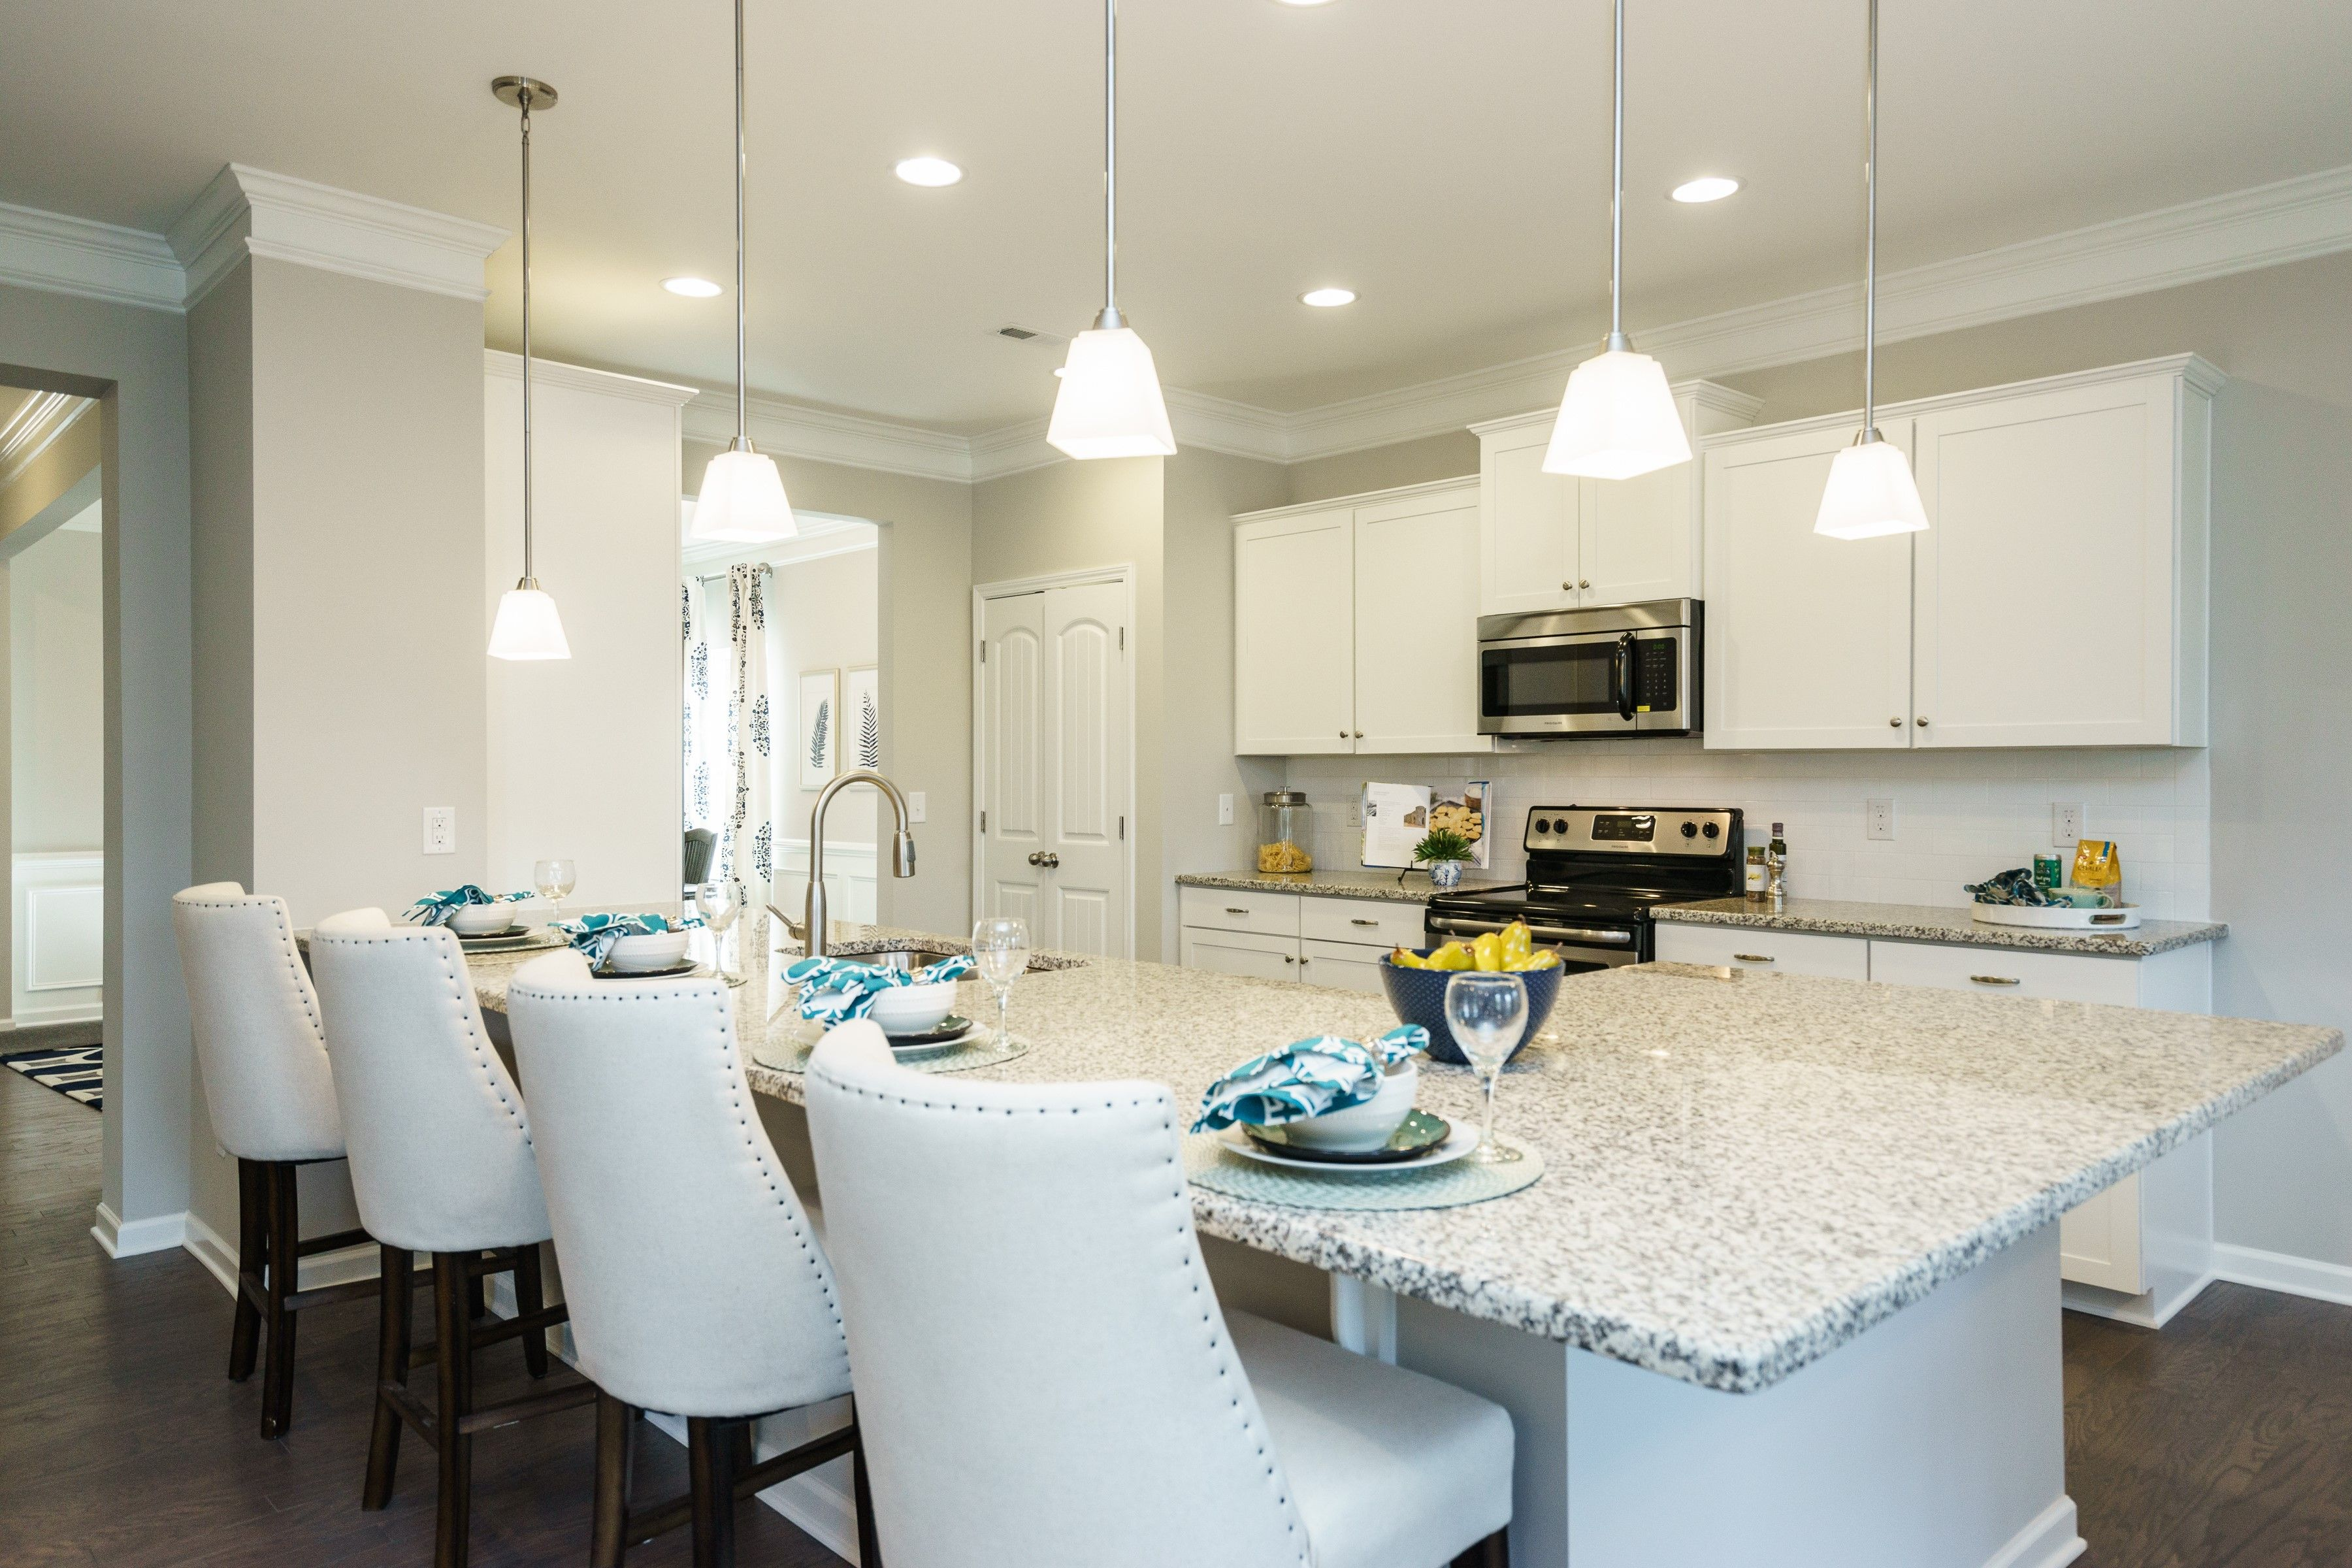 Kitchen featured in The Avery By Smith Douglas Homes in Birmingham, AL